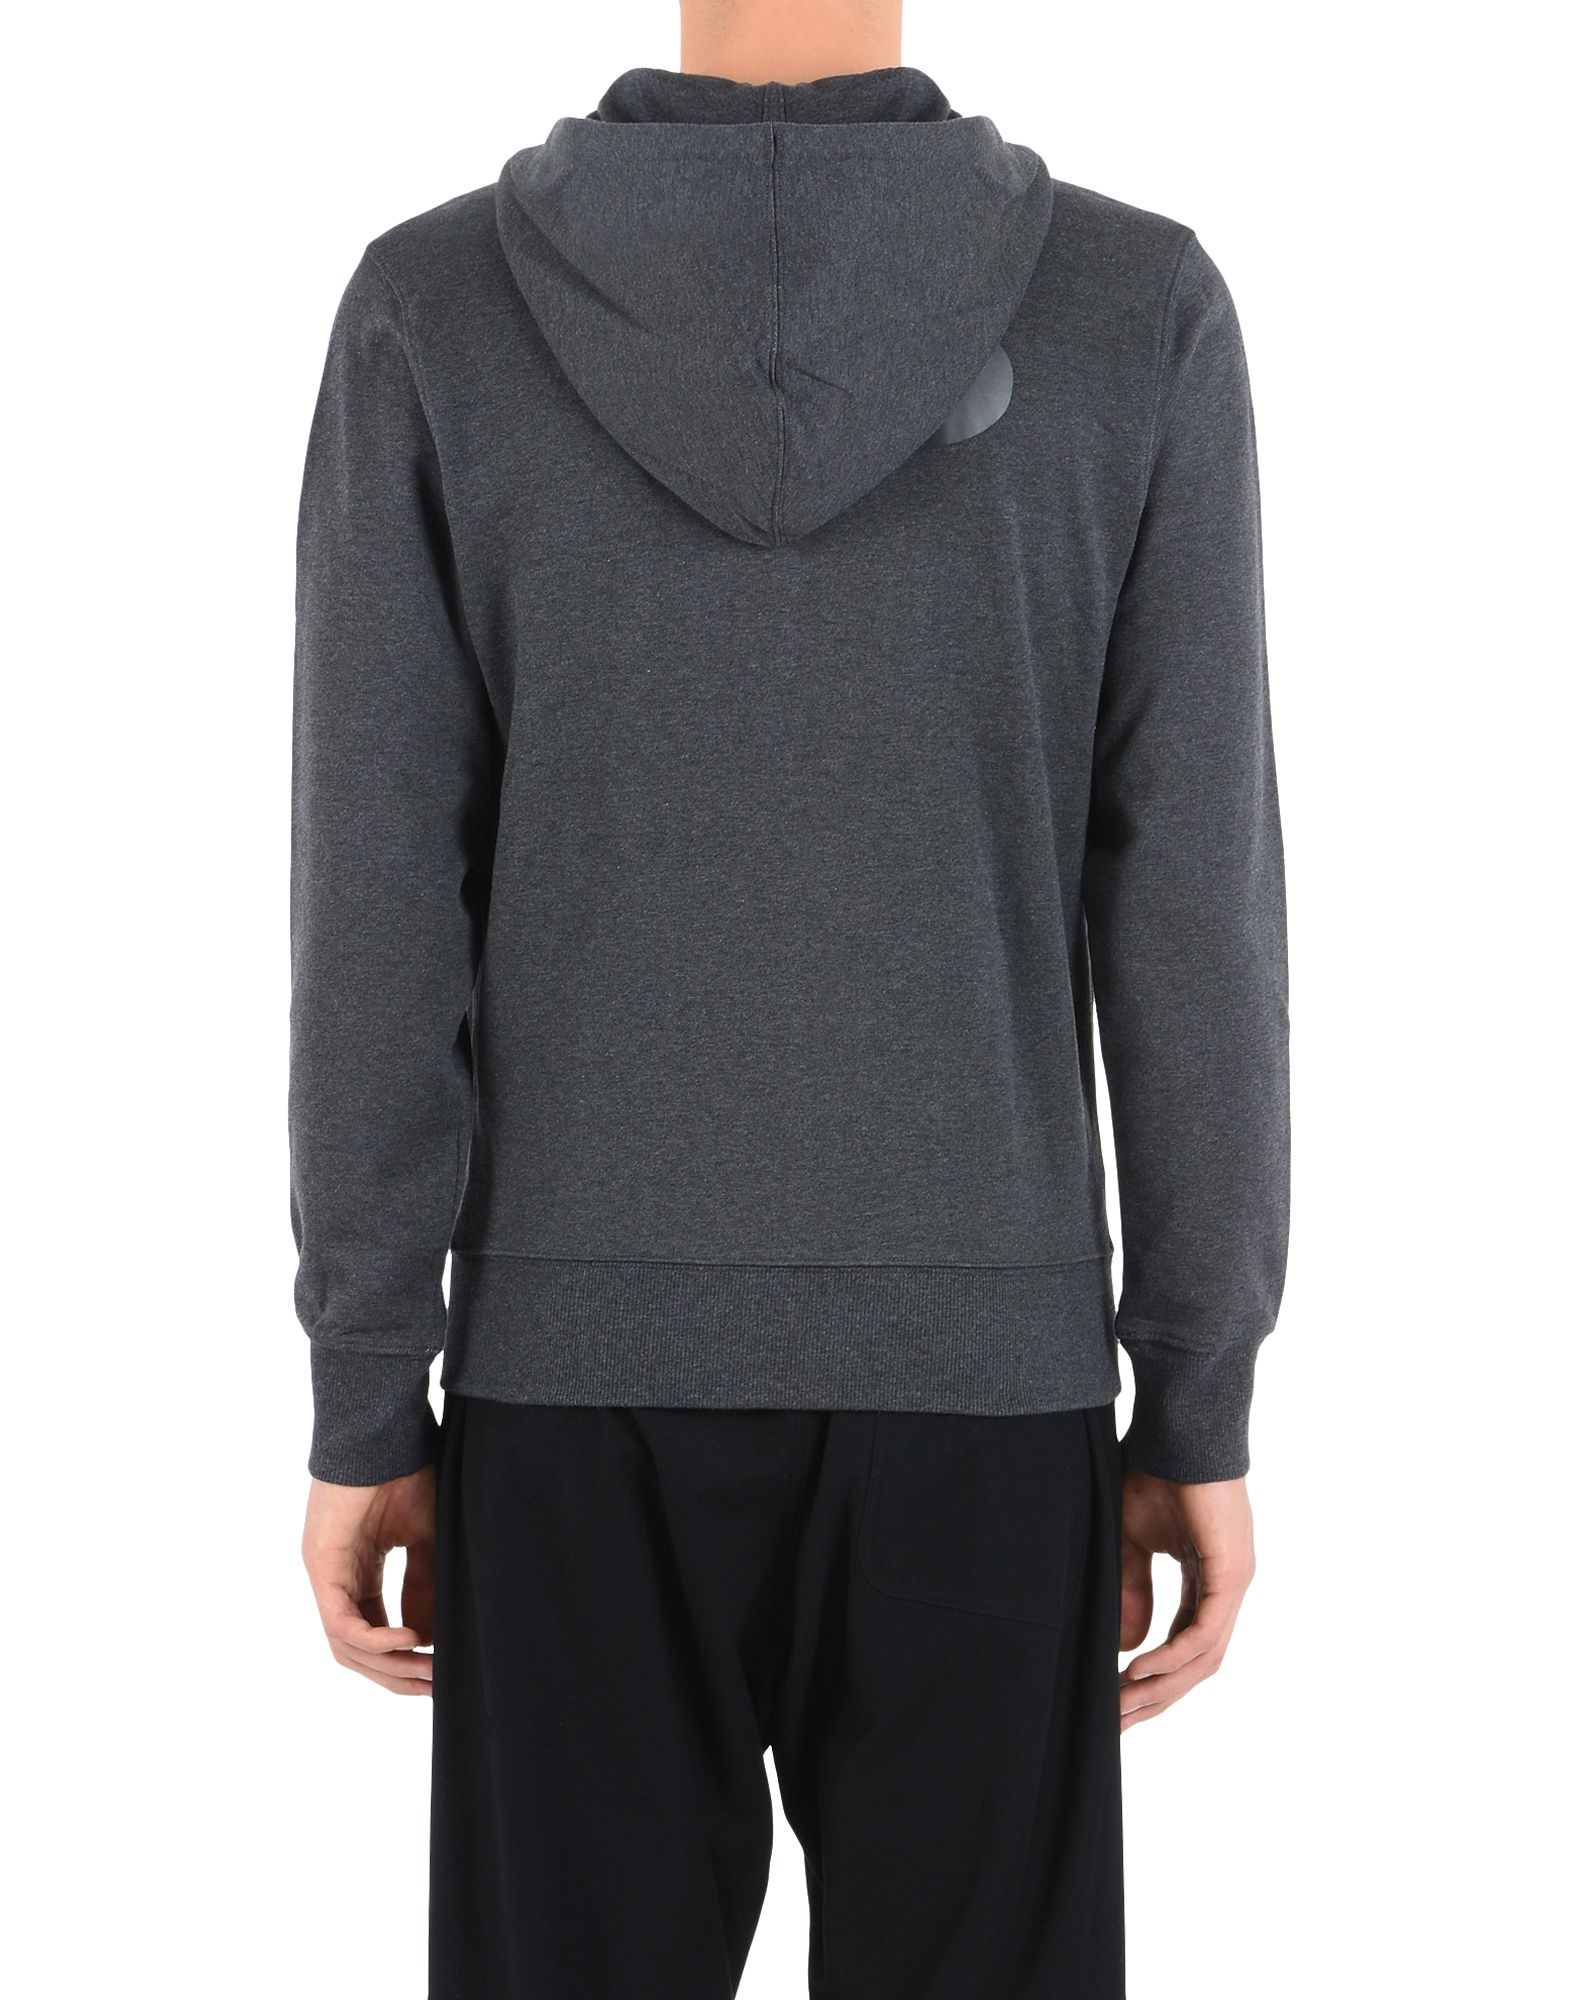 Y 3 CLASSIC HOODY Hooded Sweatshirts for Men | Adidas Y-3 Official ...